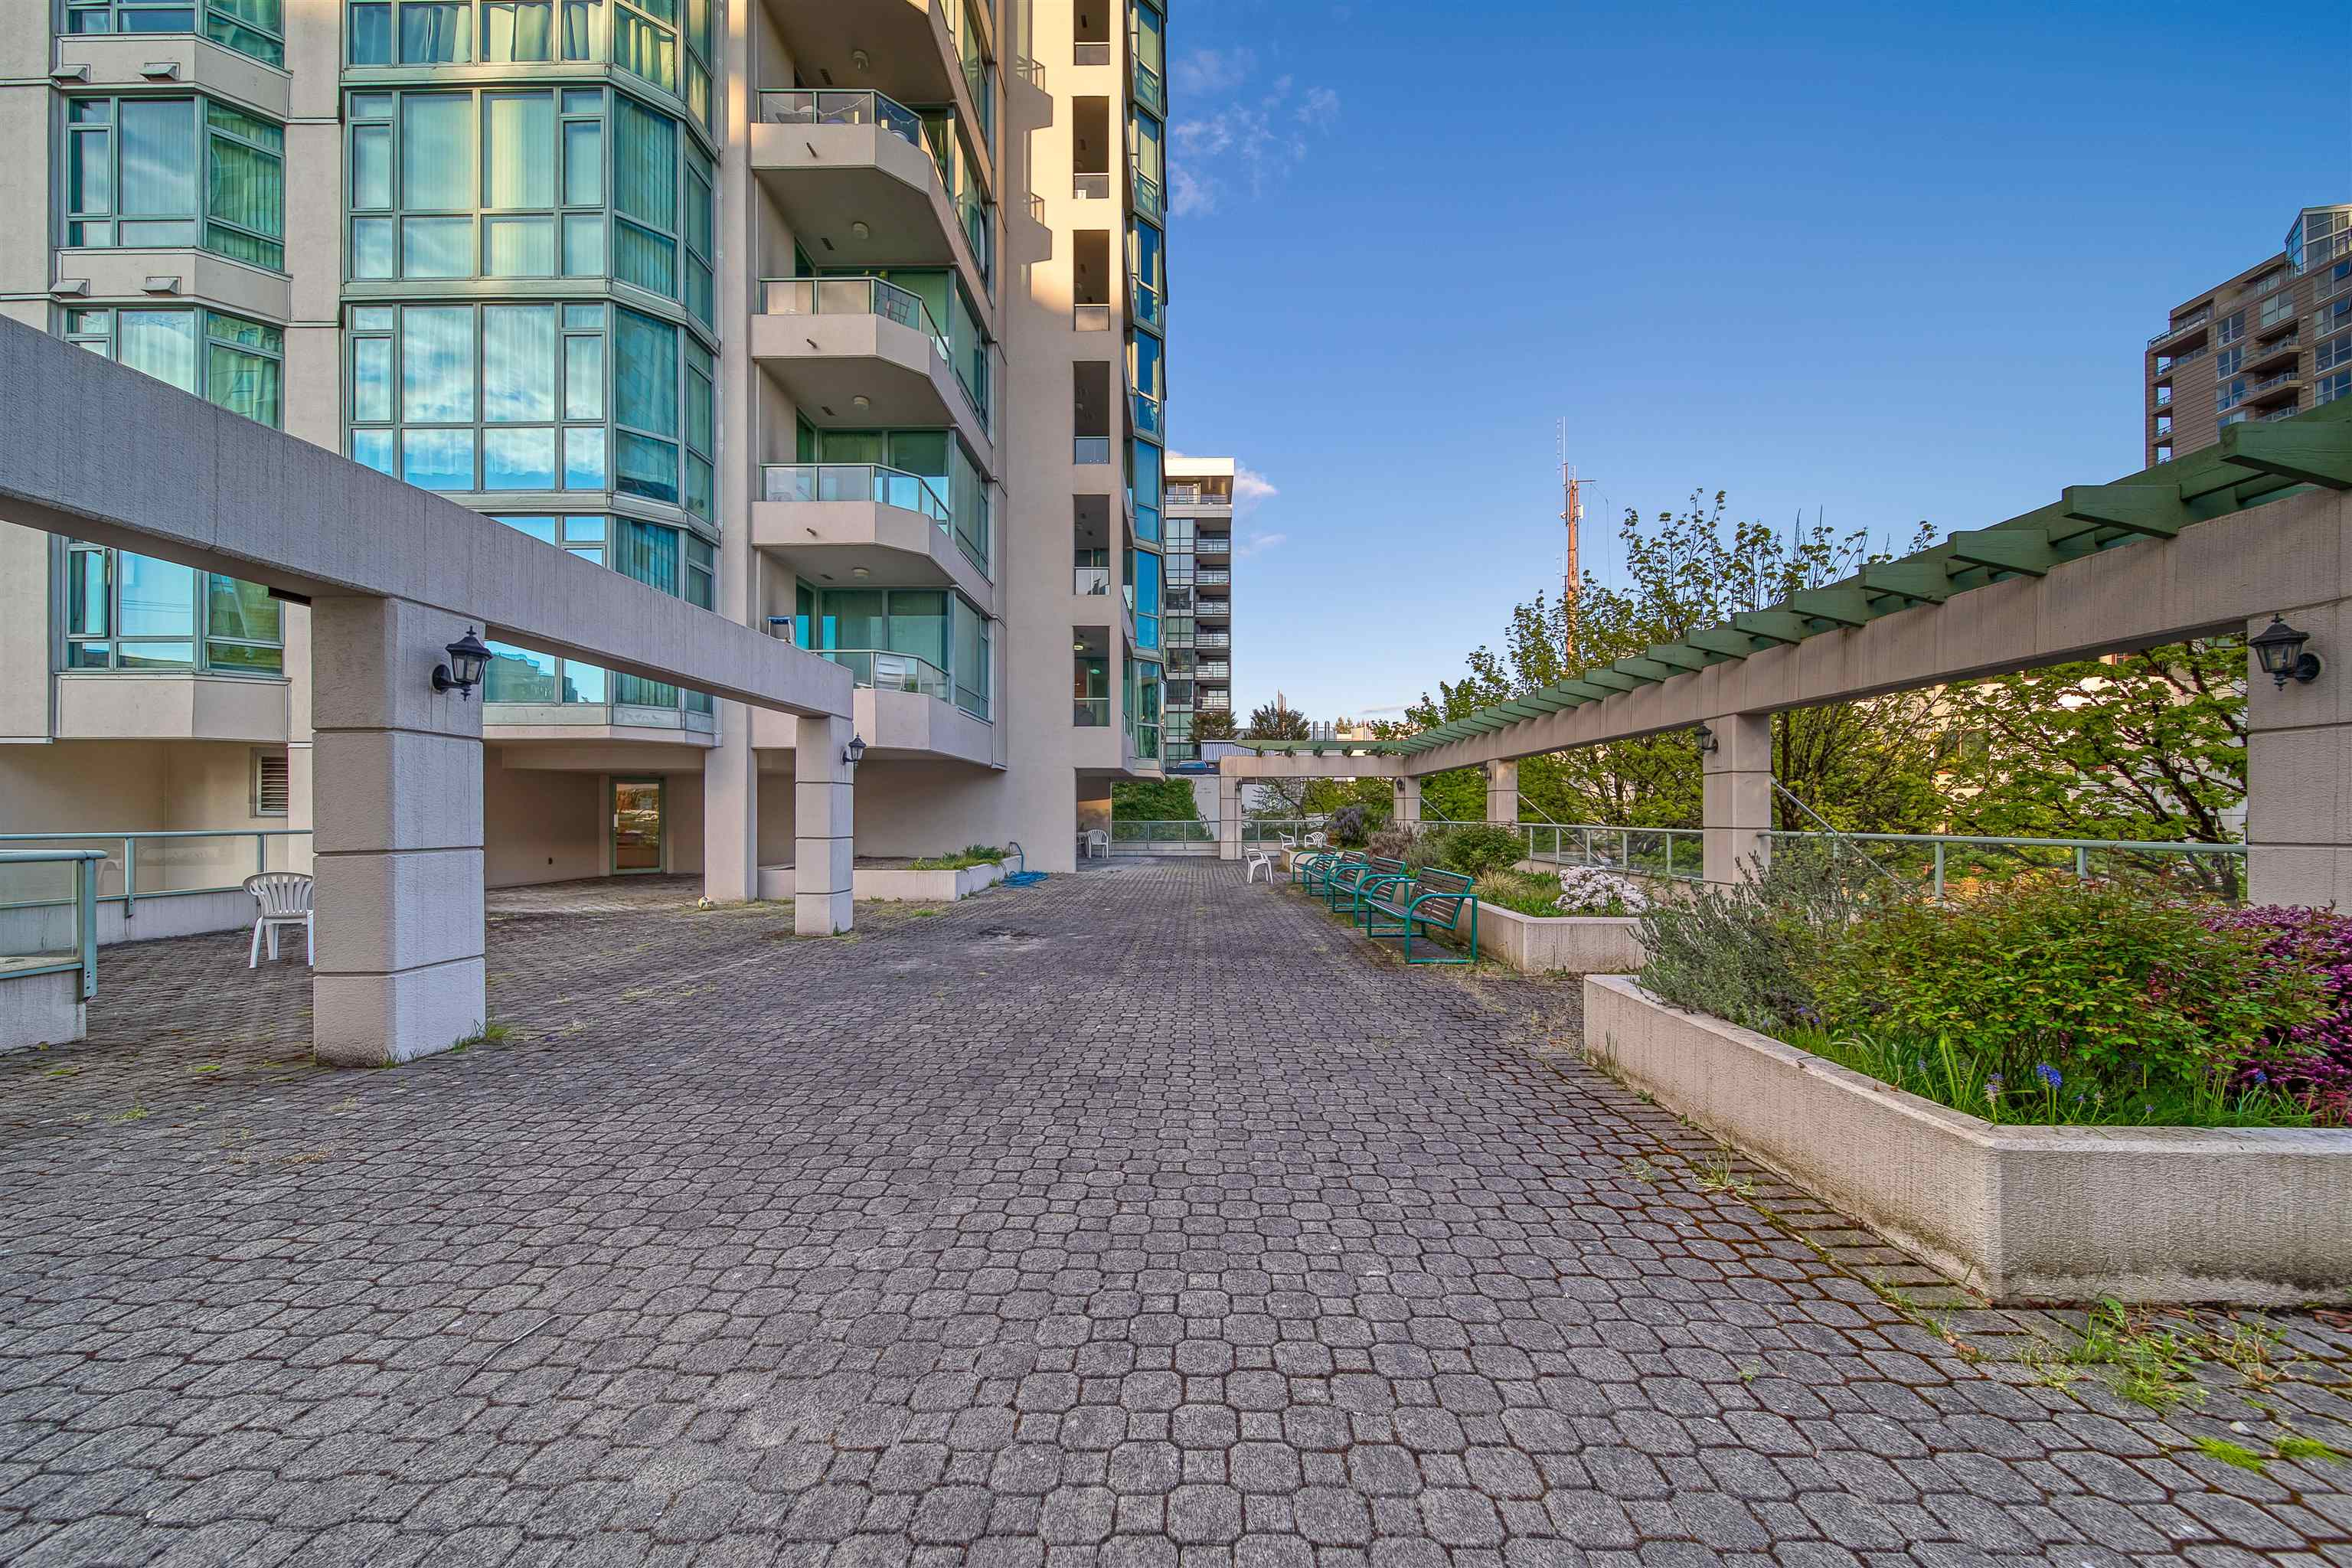 303 140 E 14TH STREET - Central Lonsdale Apartment/Condo for sale, 1 Bedroom (R2618094) - #12